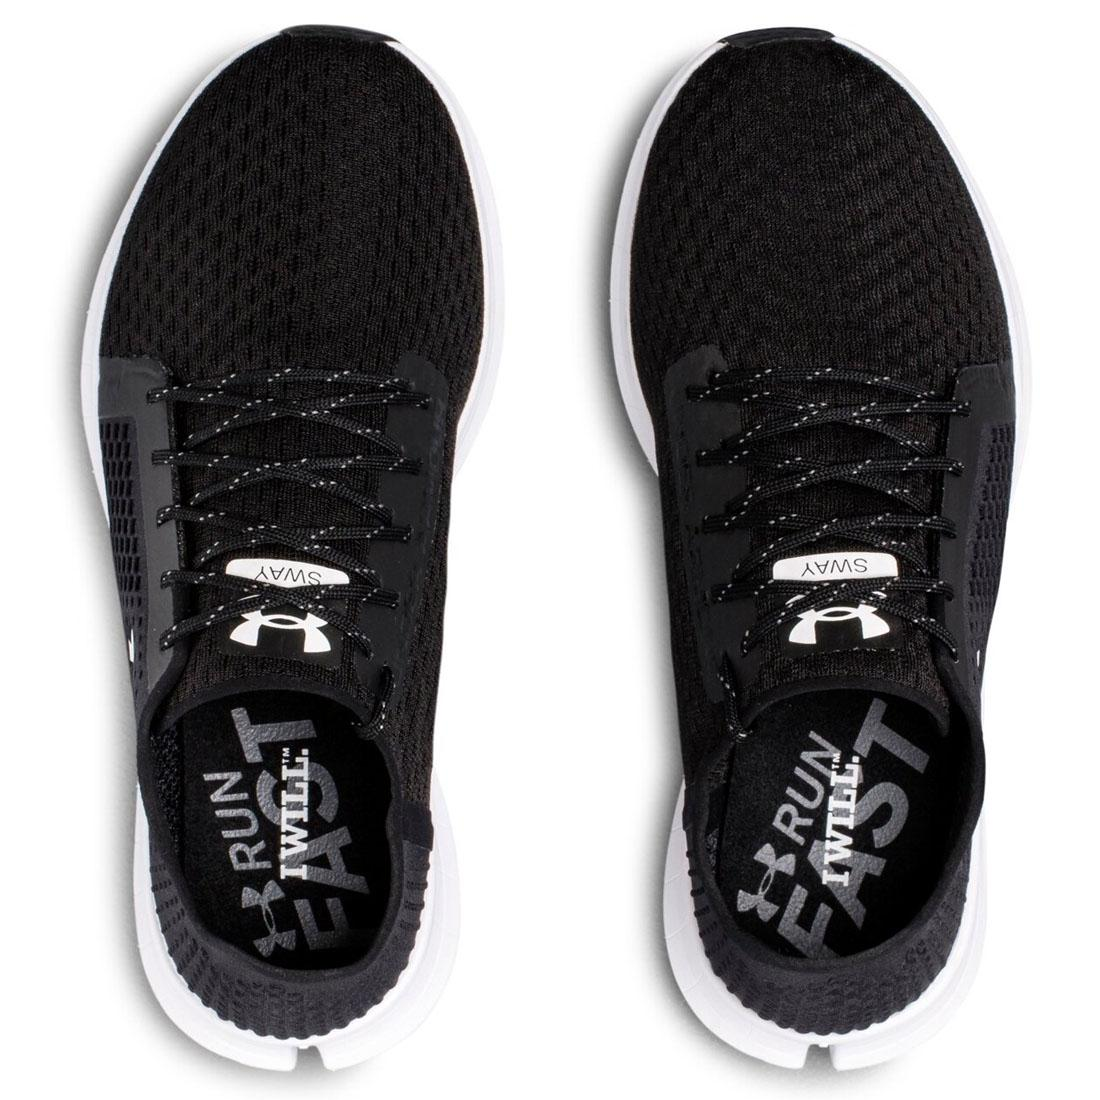 Under Armour UA Womens Sway Ladies Black Trainers Gym Training Running Shoes